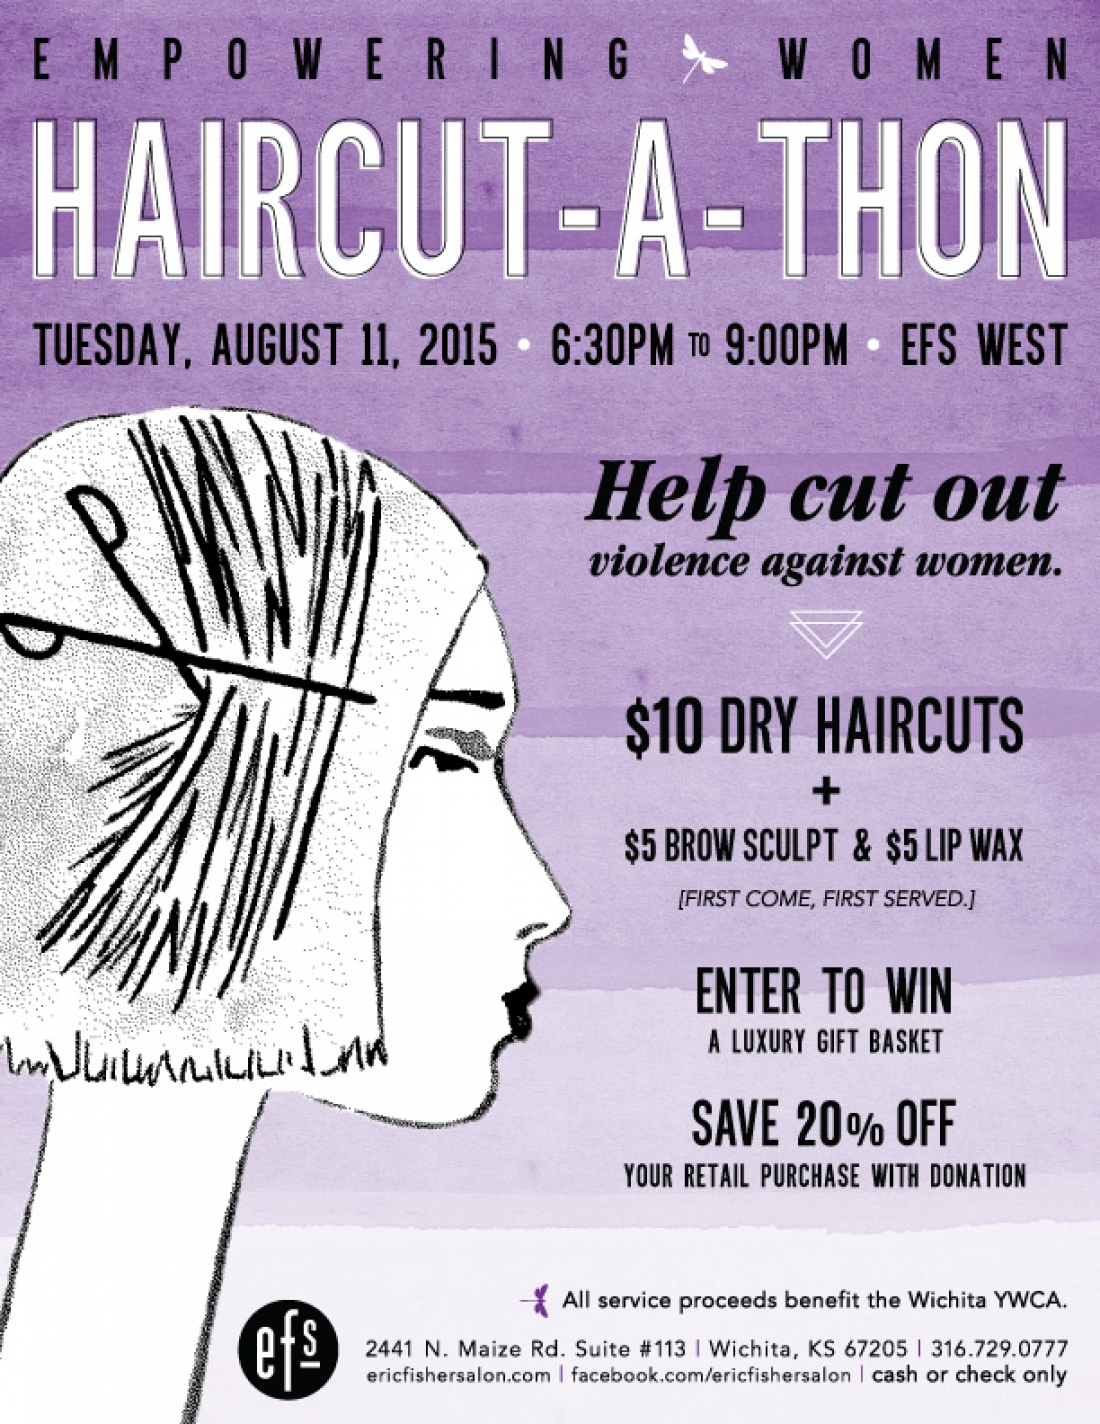 Empowering Women Haircut A Thon At Efs West Eric Fisher Salon